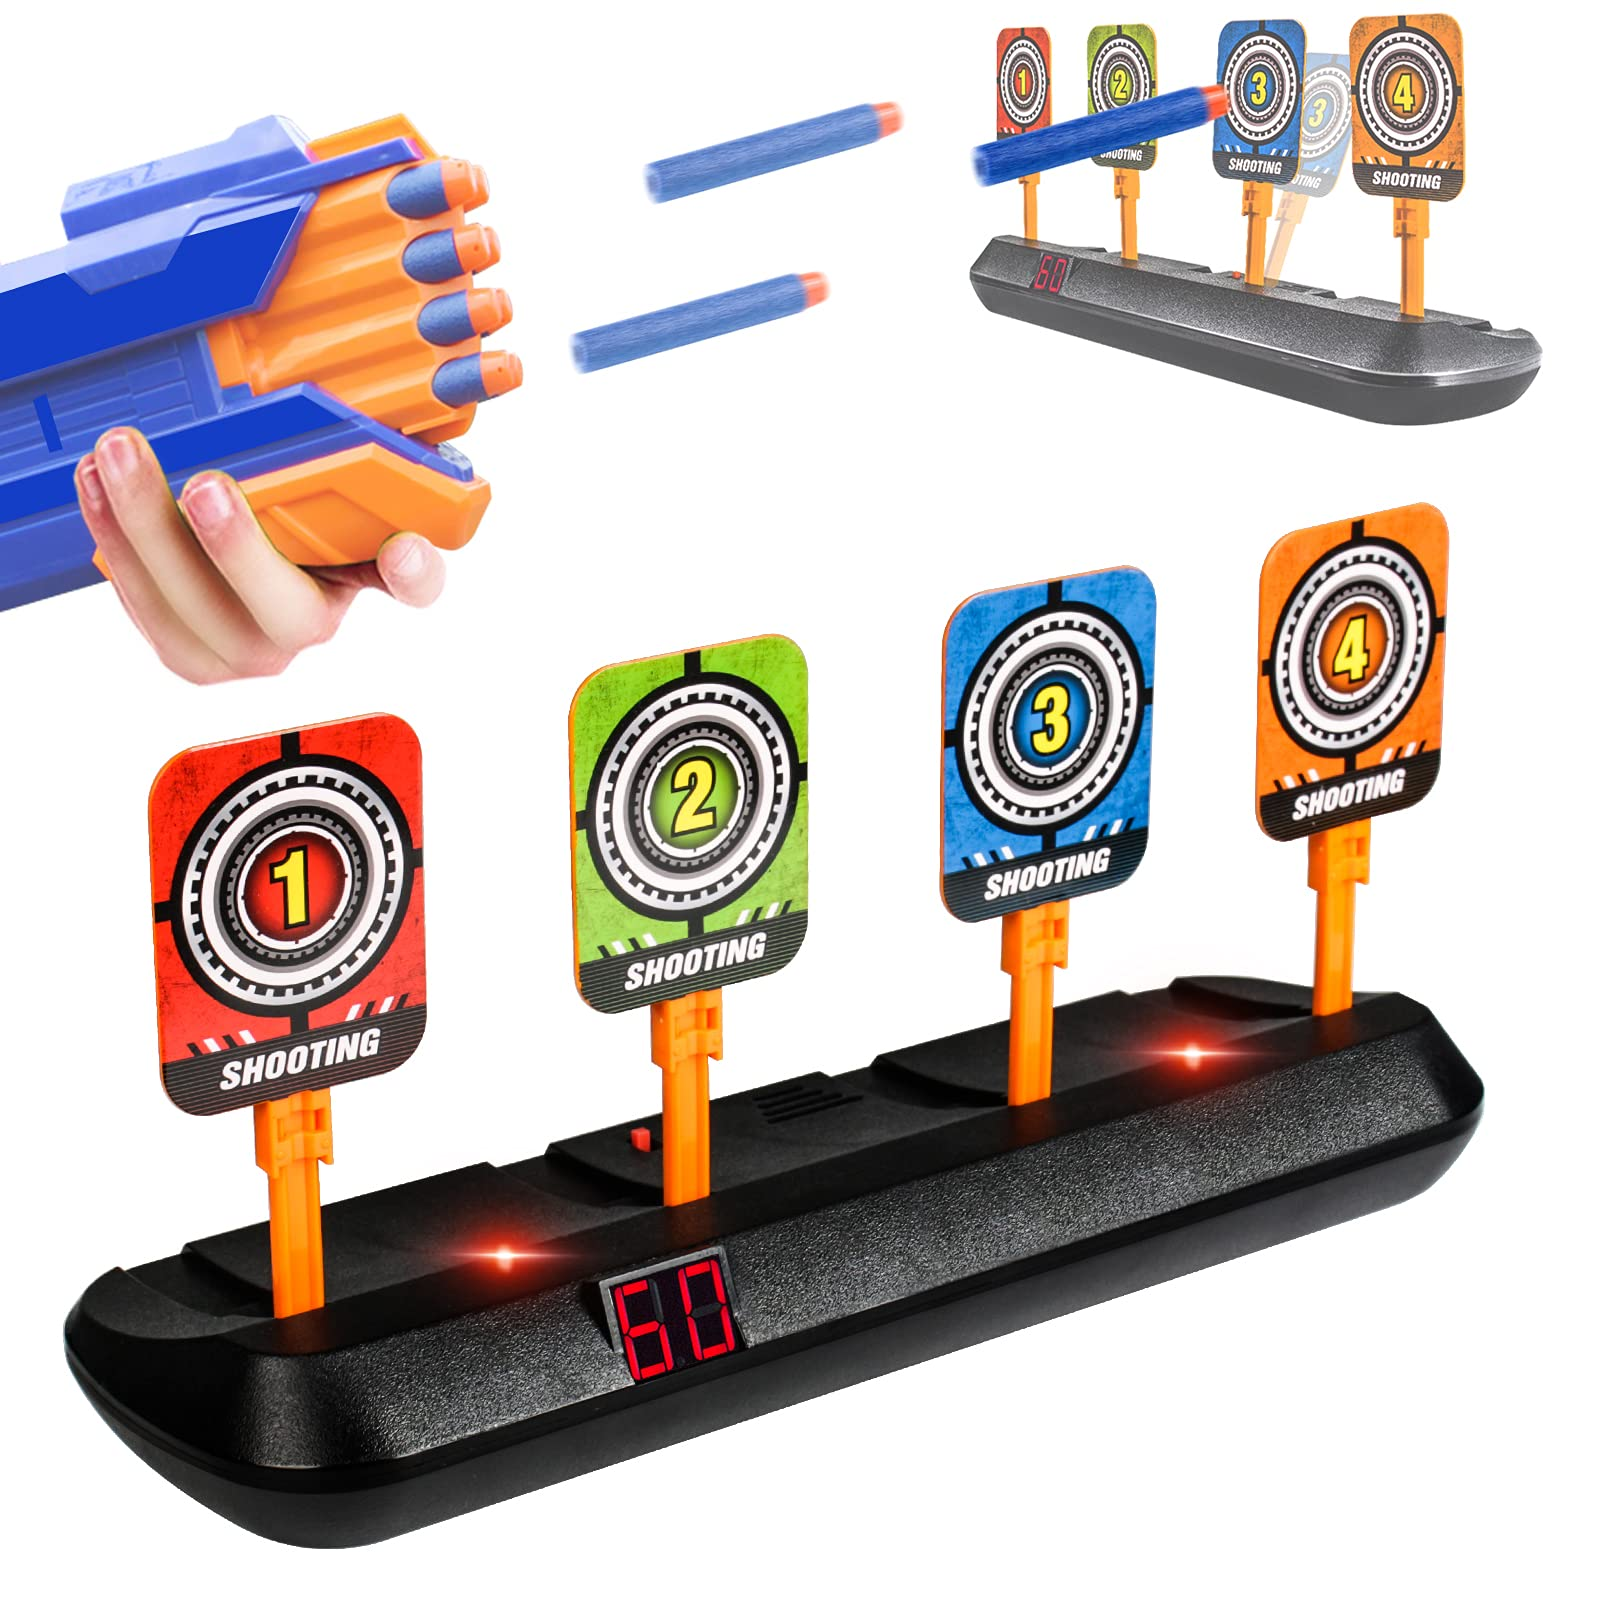 AMOSTING Electronic Shooting Target for Nerf Guns 4 Scoring Auto Reset Digital